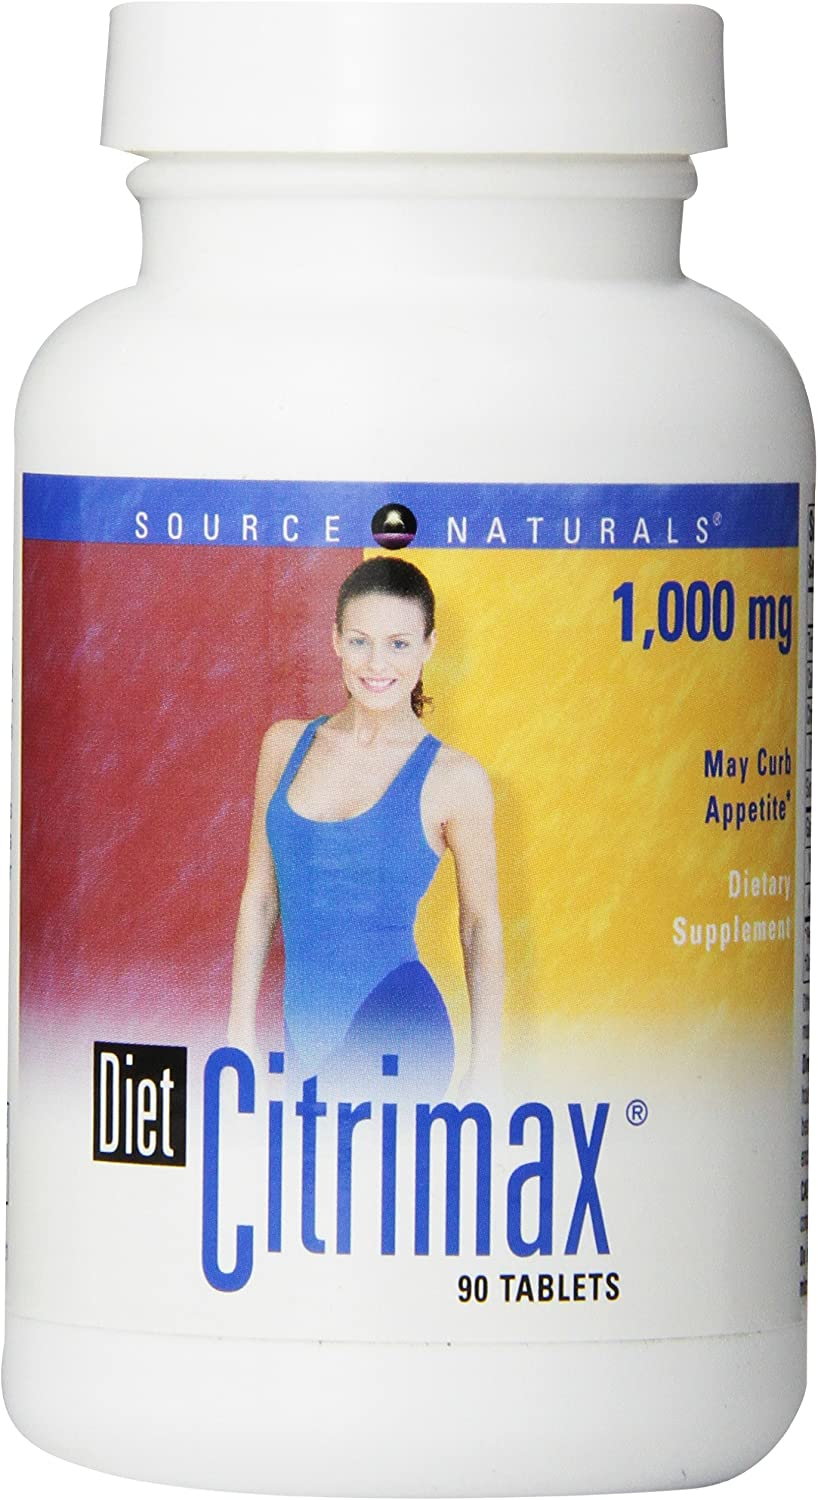 Source Naturals Diet Citrimax 1000mg, 90 Tablets